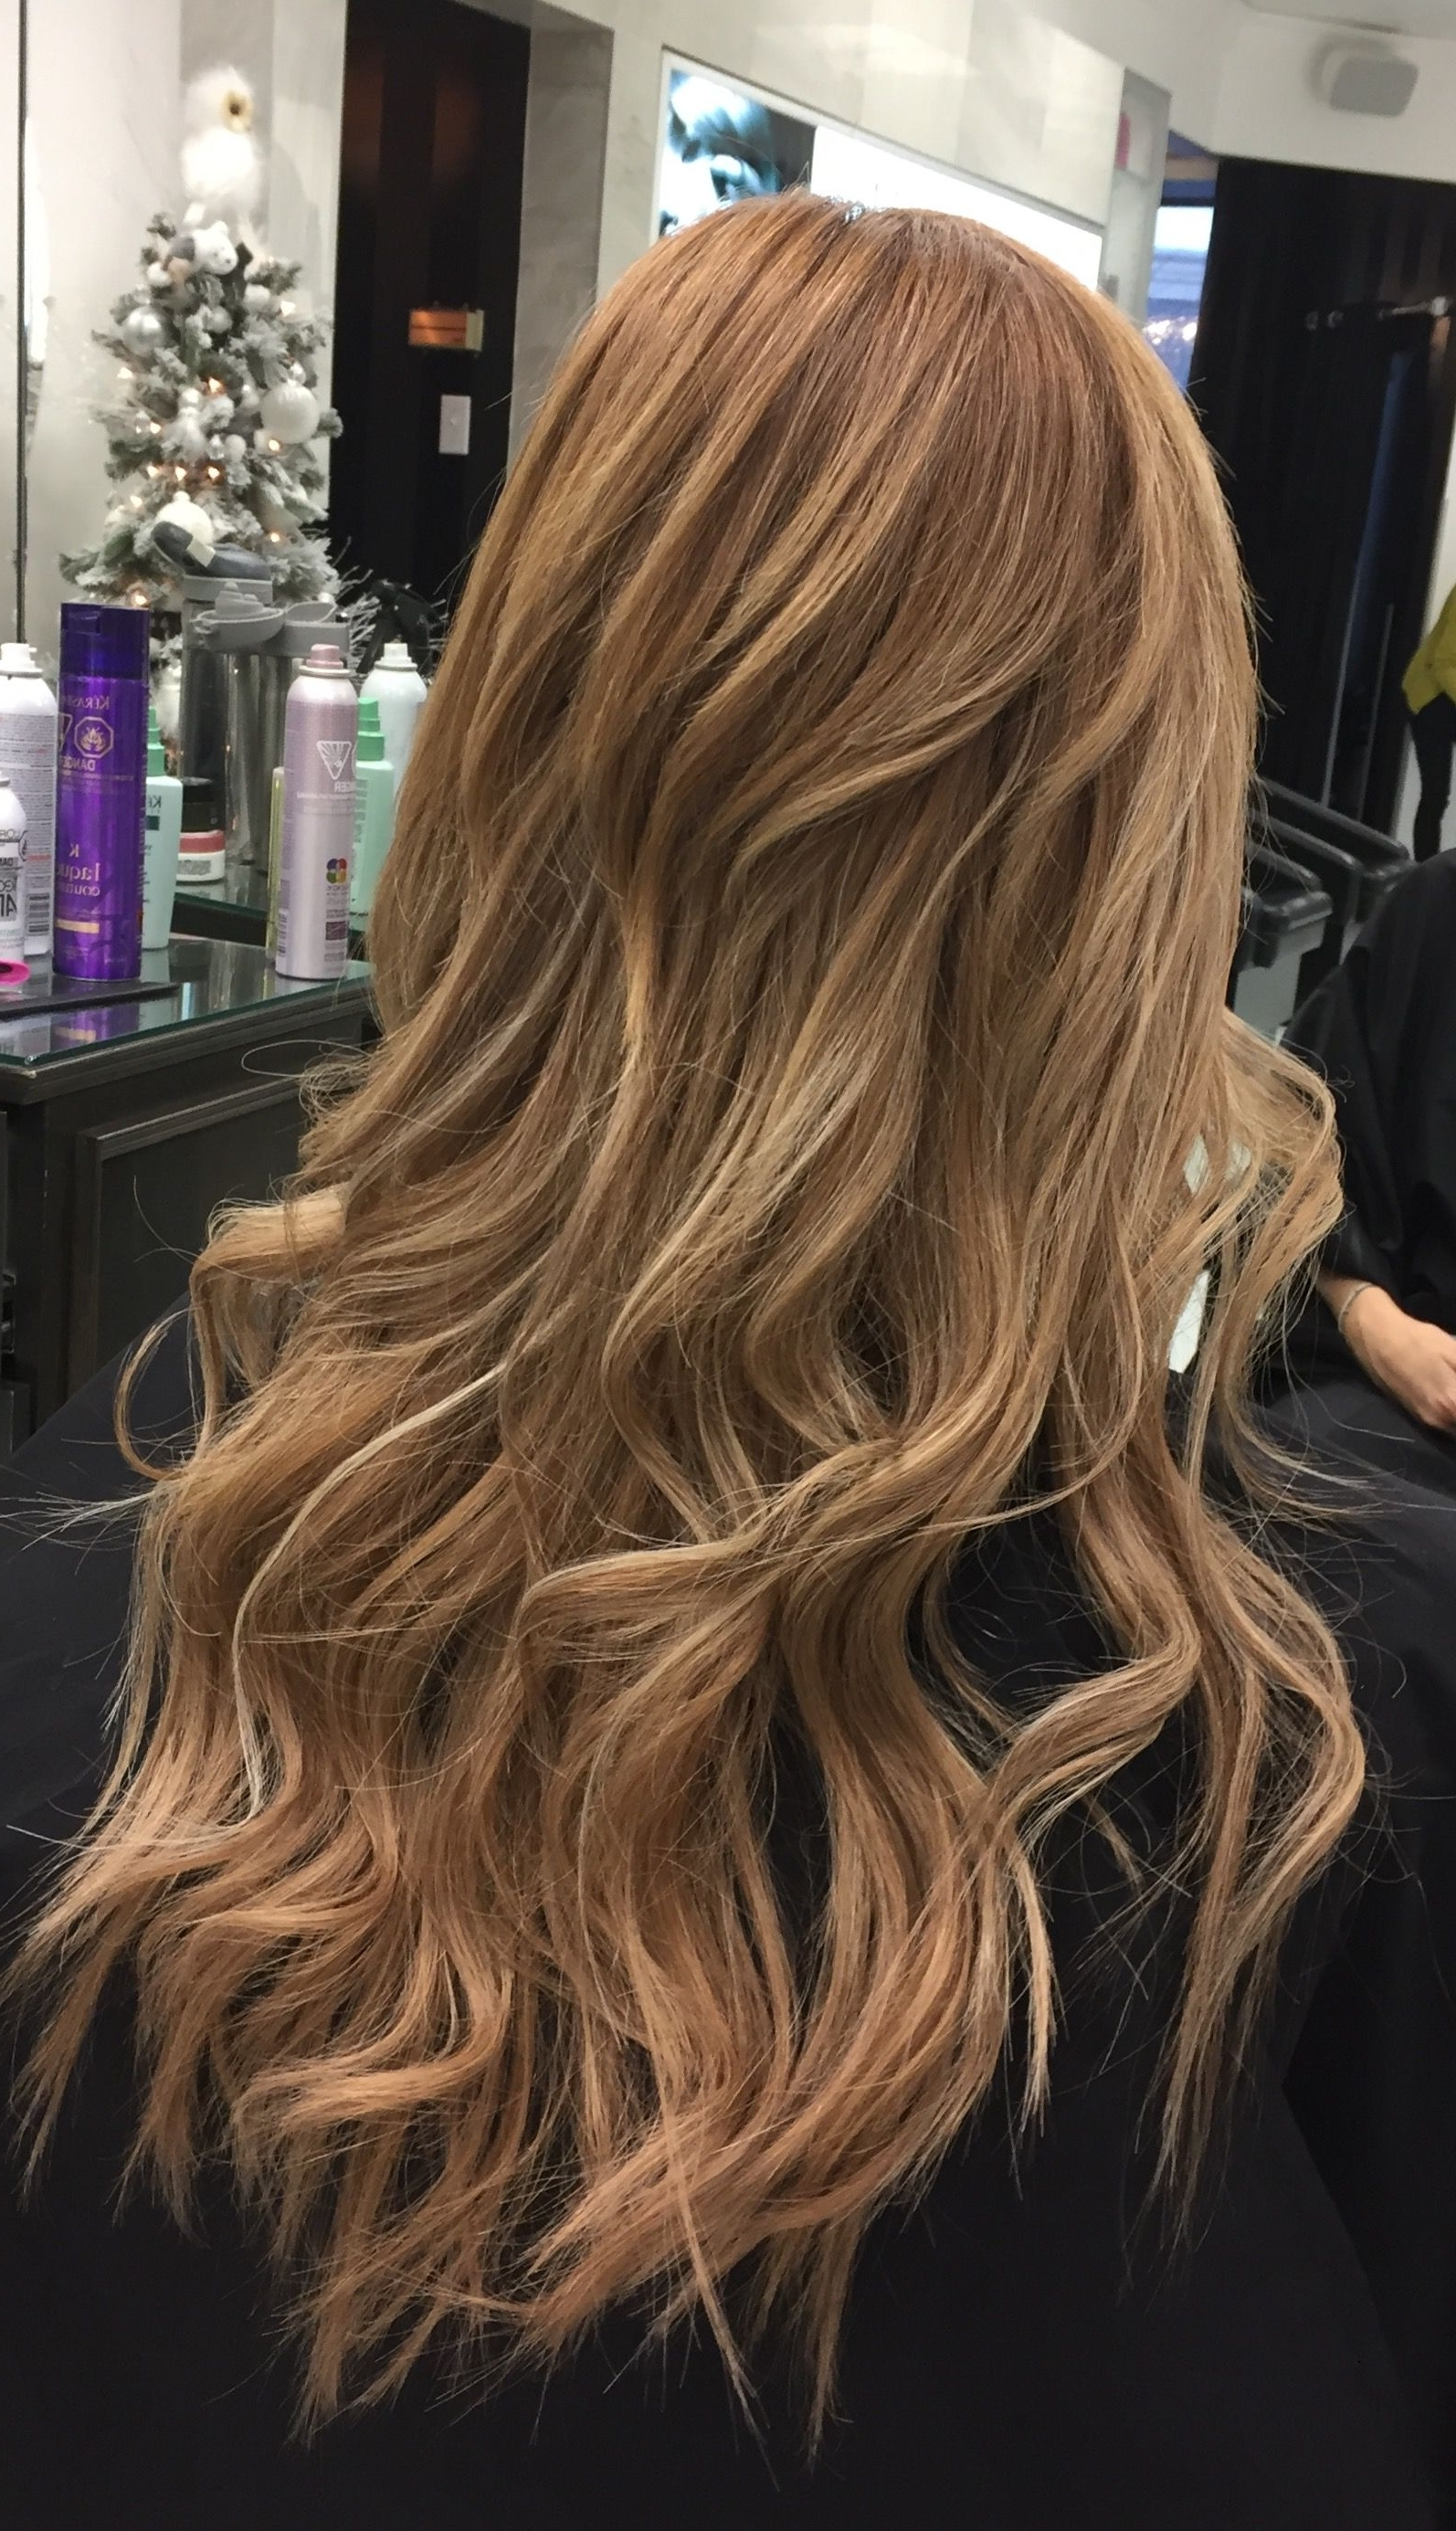 Most Up To Date Dirty Blonde Hairstyles With Subtle Highlights With Regard To Zala Hair Extensions Mix Of Dirty Blond, Sunkissed Highlights And (View 16 of 20)